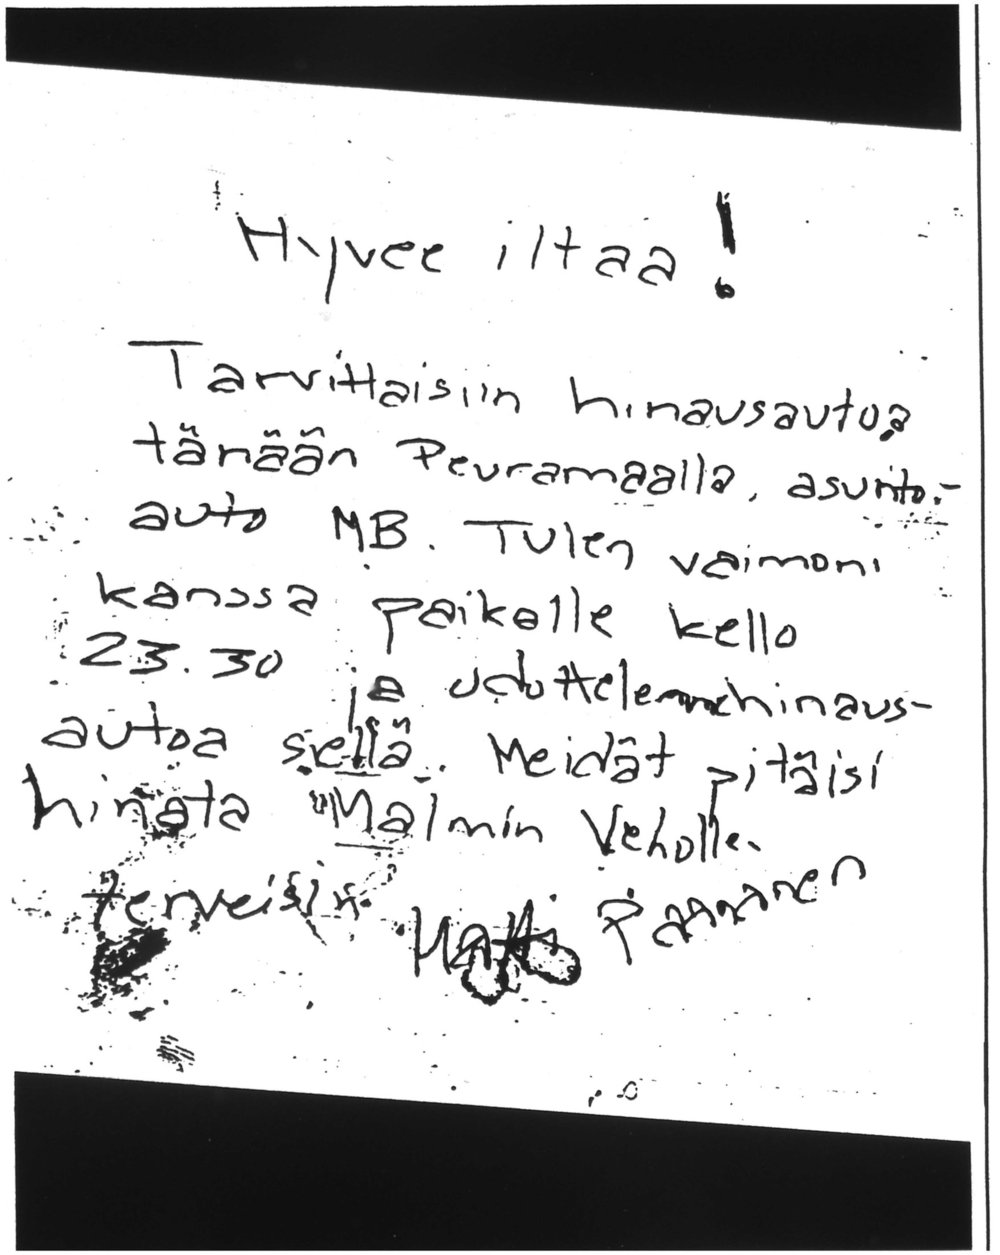 Here is the letter mentioned in the episode loosely translated from Finnish :  Good evening!  We need help towing a car today in Peuramaa. A camper van, Mercedes Benz. I will arrive with my wife at half past eleven and we will wait for the tow truck there. We need to be towed to Malmi Veho.  Greetings  Matti Paananen